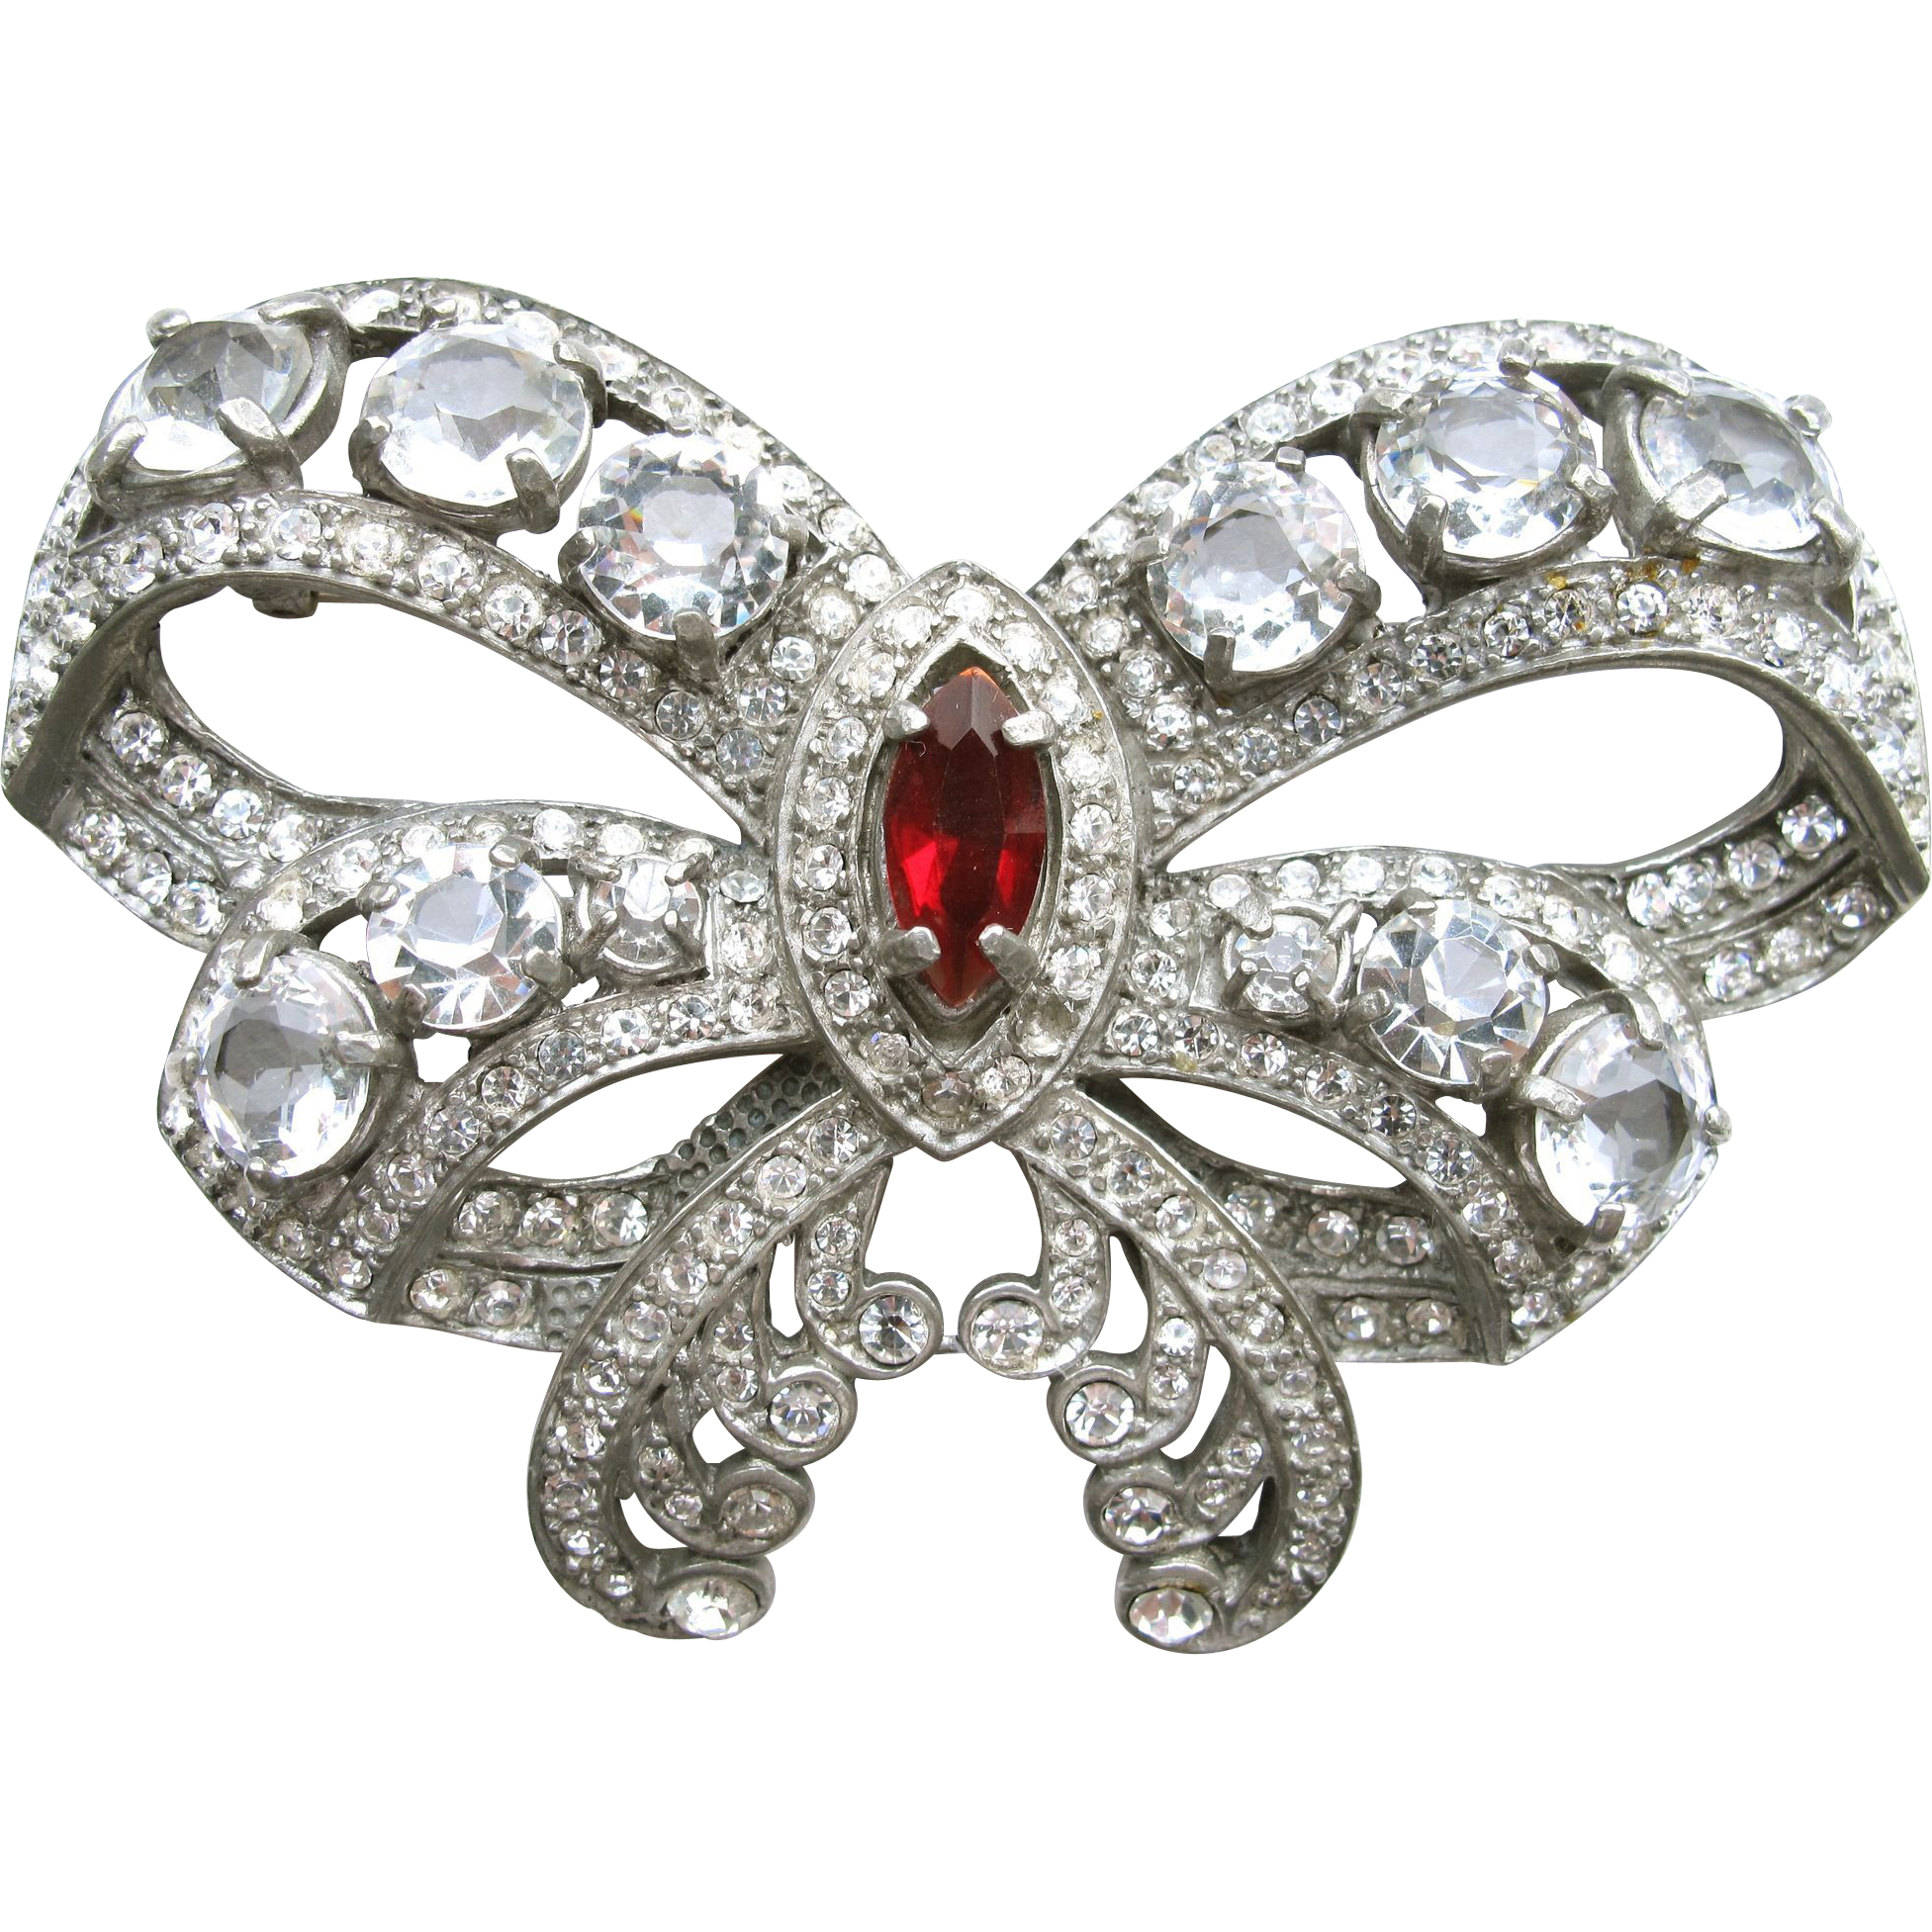 Huge Eisenberg Original Rhinestone Bow Pin Brooch 3in